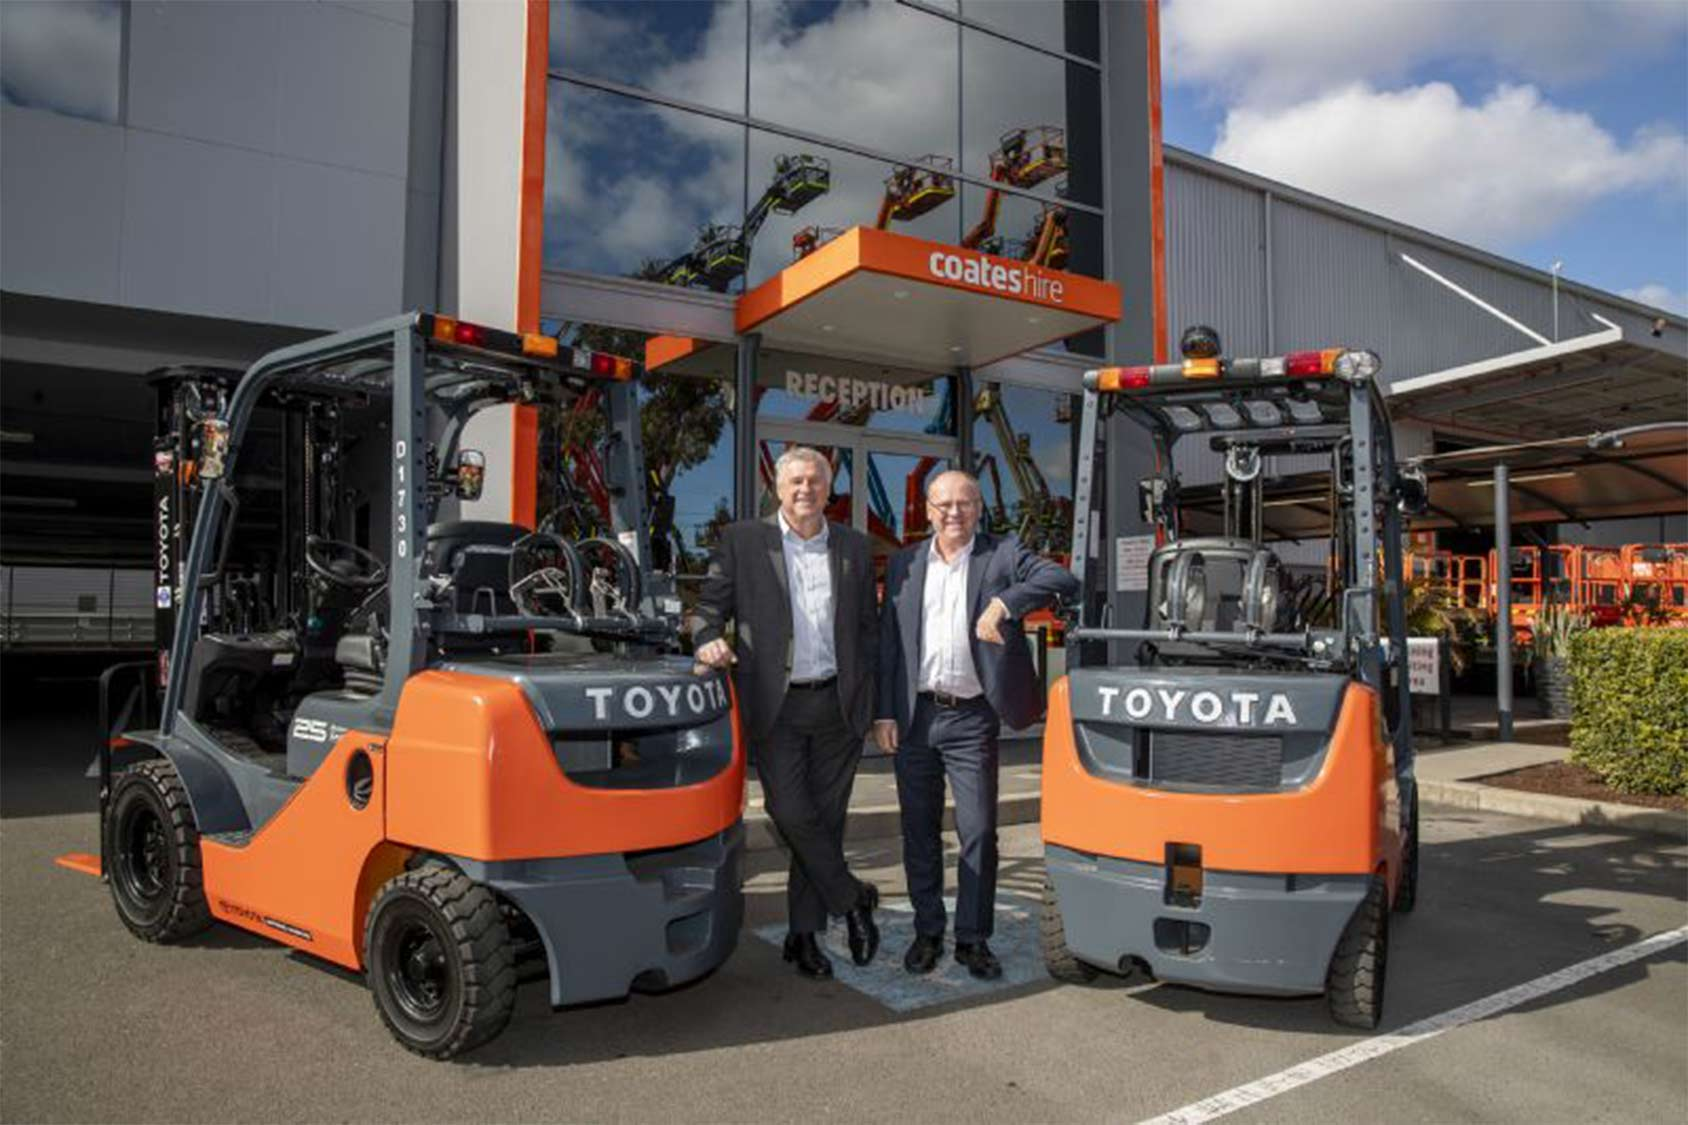 Electric Forklift Market Research Report: Market Analysis on the Future Growth Prospects and Market Trends Adopted by the Competitors